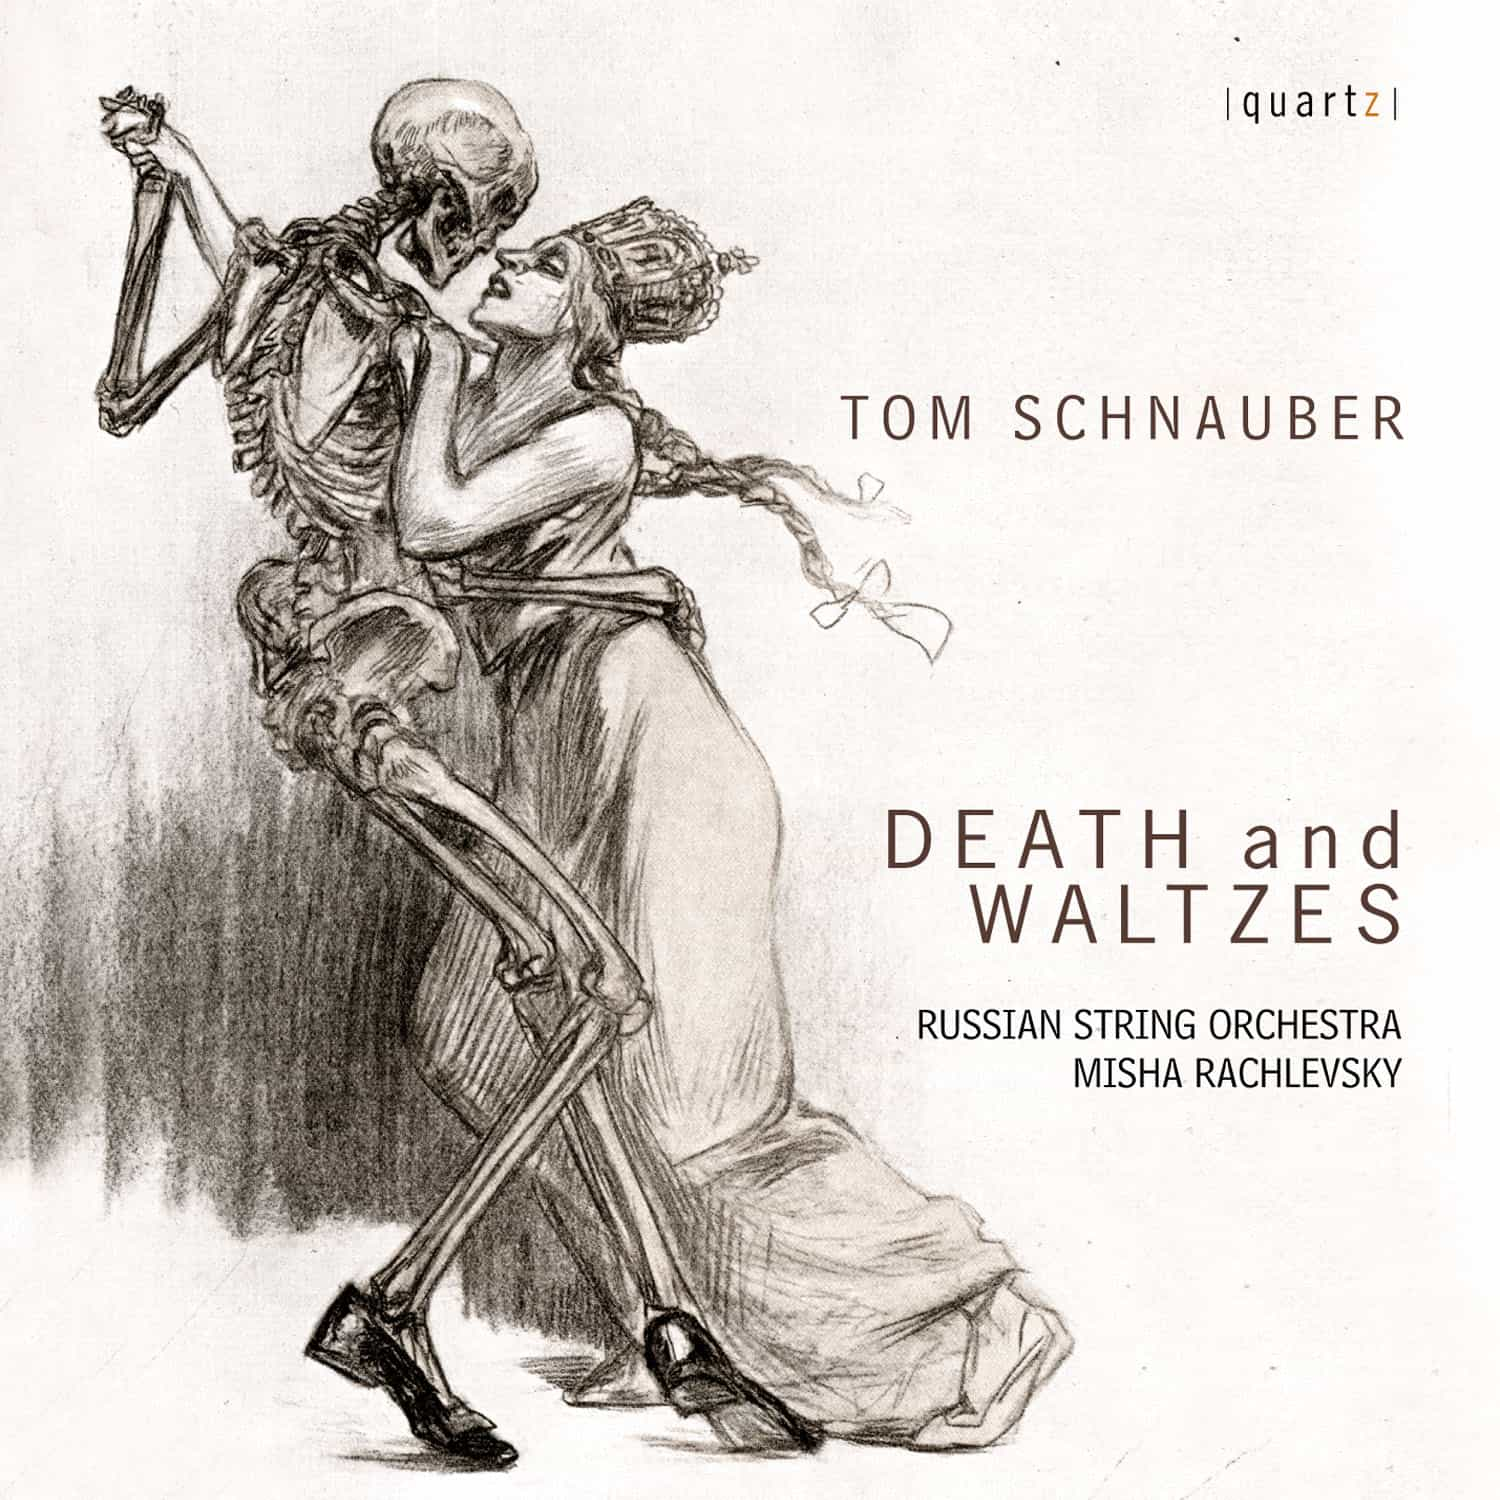 Tom Schnauber: Death and Waltzes